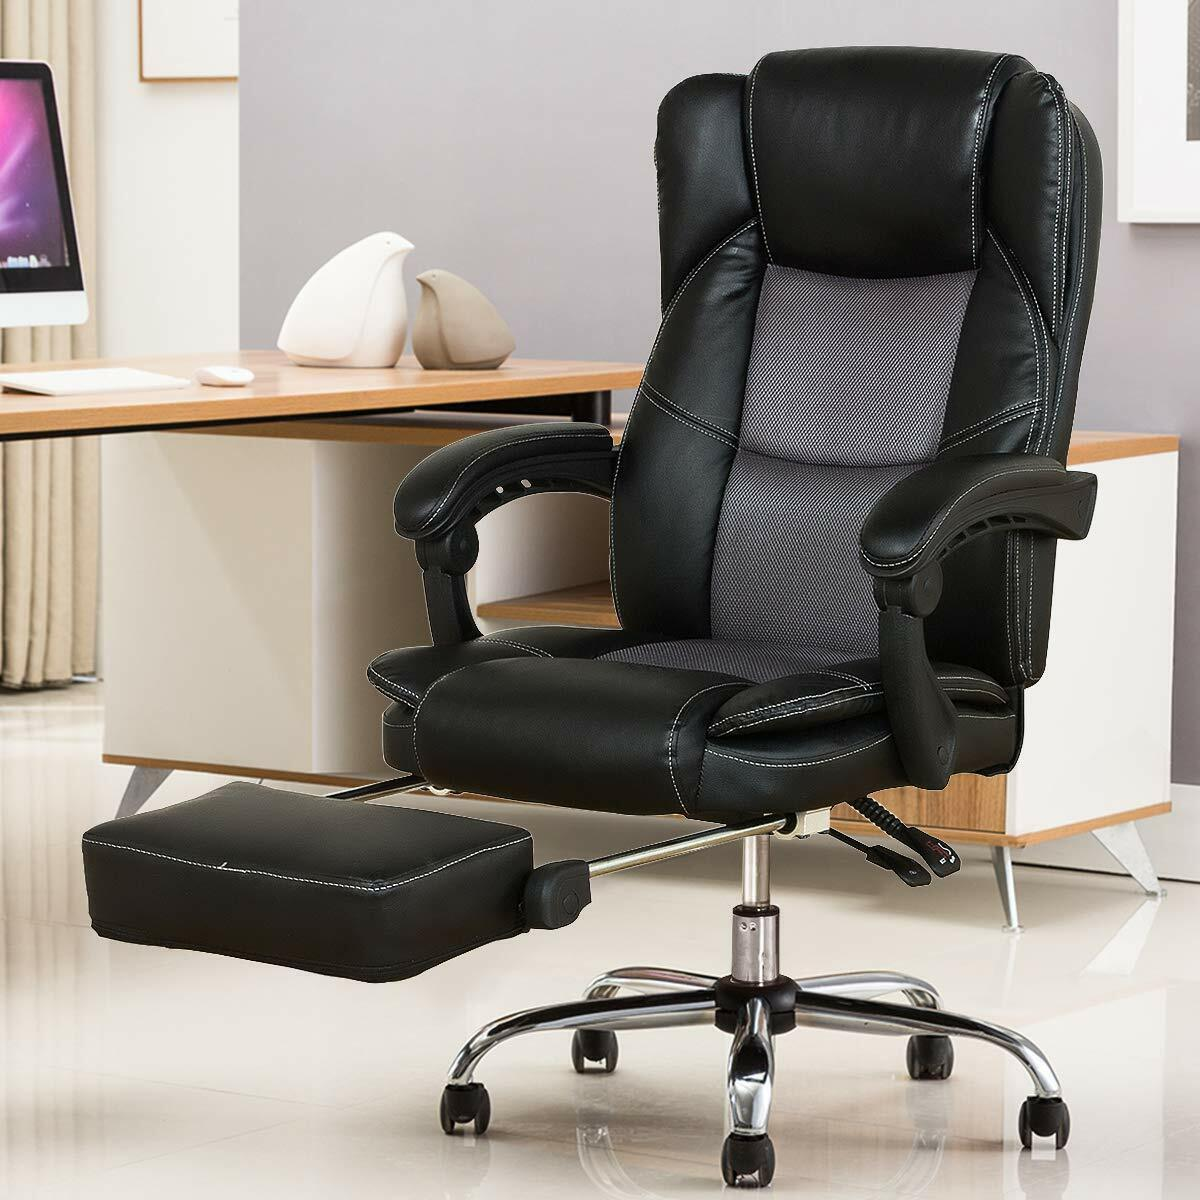 YAMASORO Recliner Office Chair High Back Executive Ergonomic